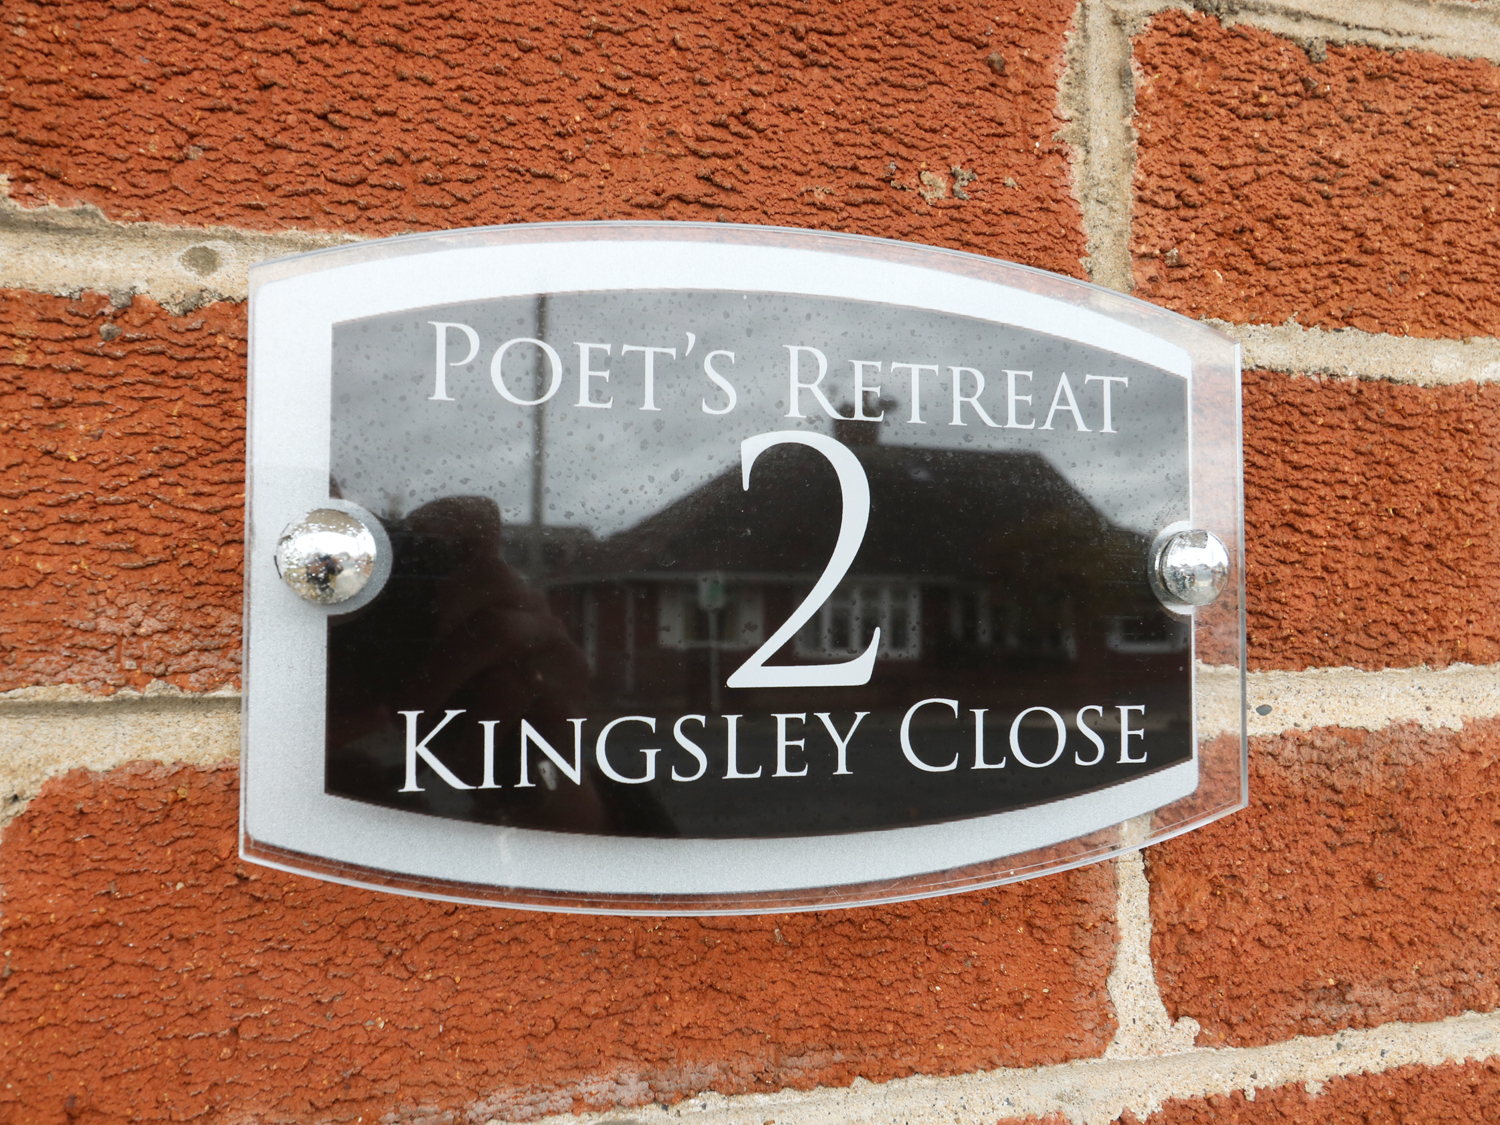 Poets Retreat